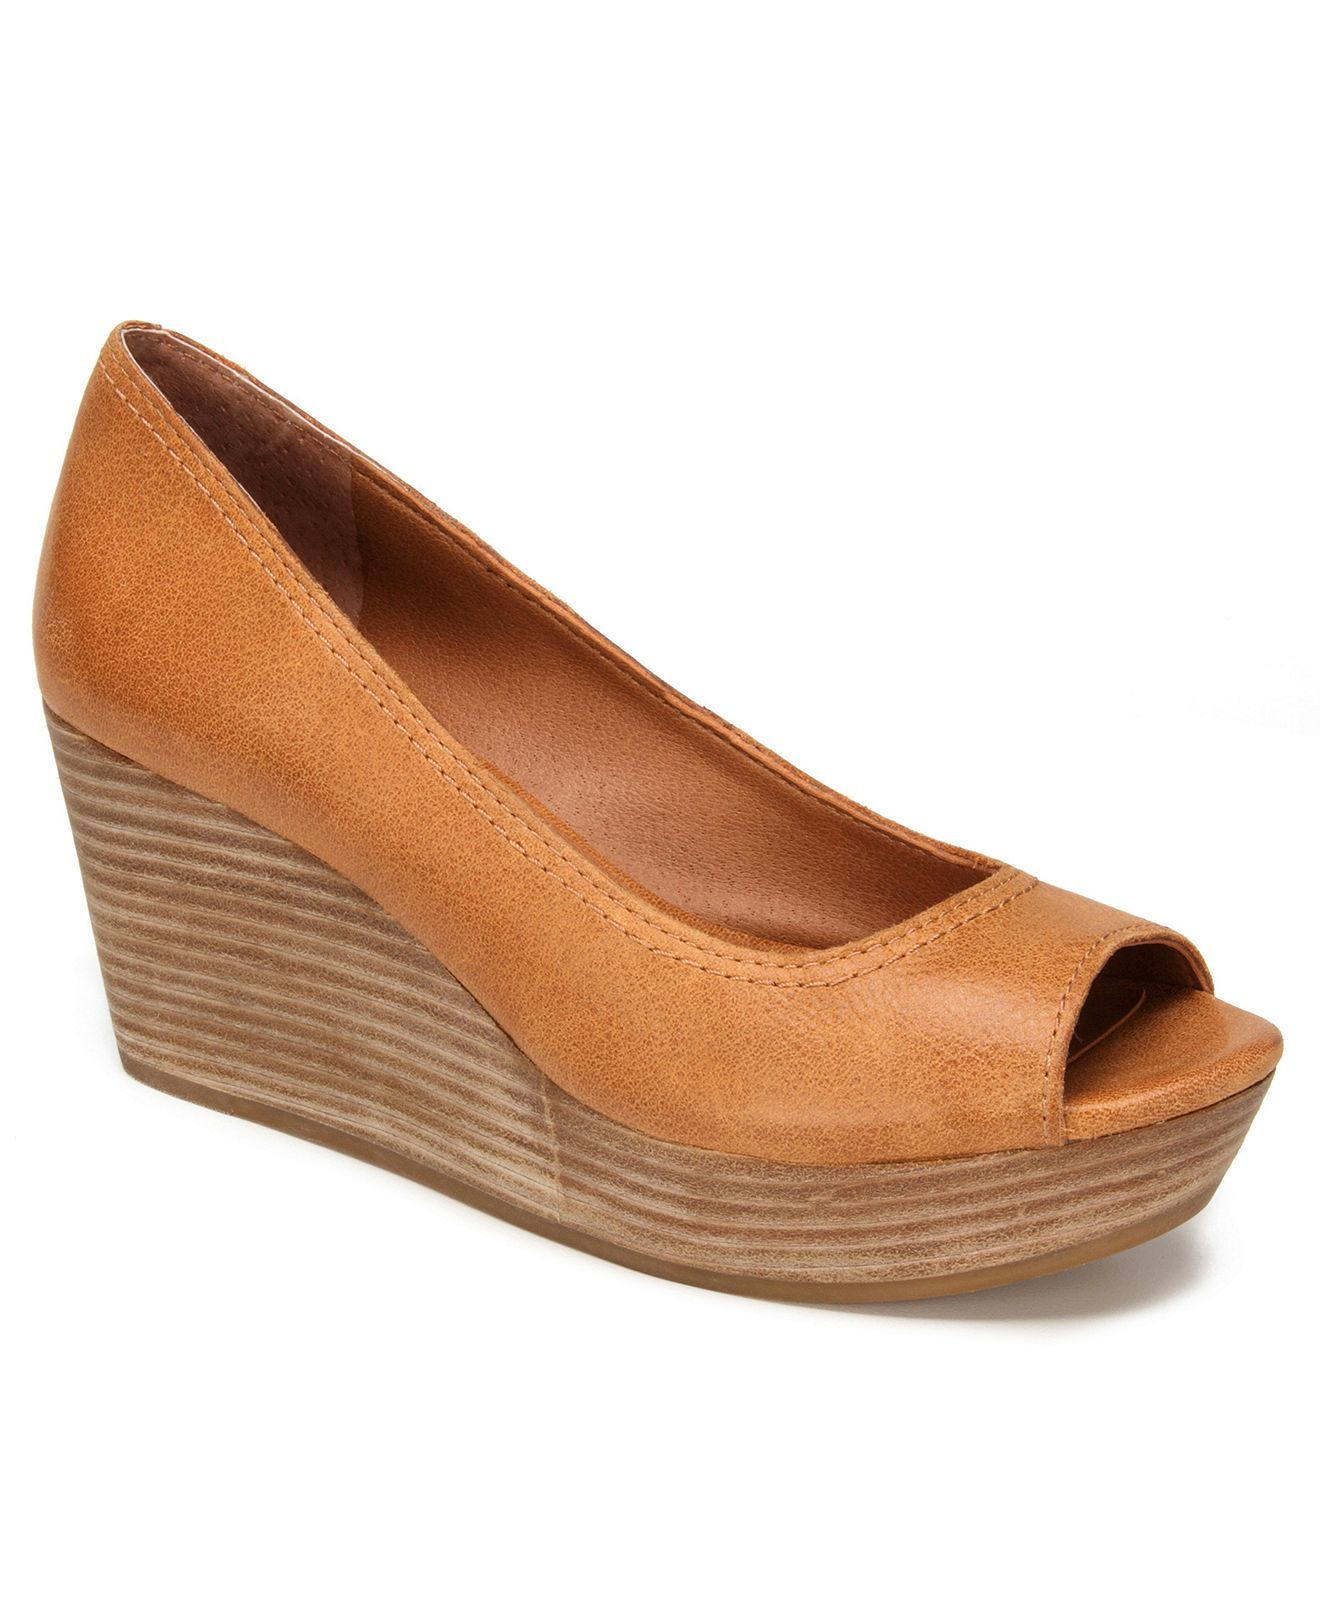 d9b8c419ab23 Lucky Brand Shoes